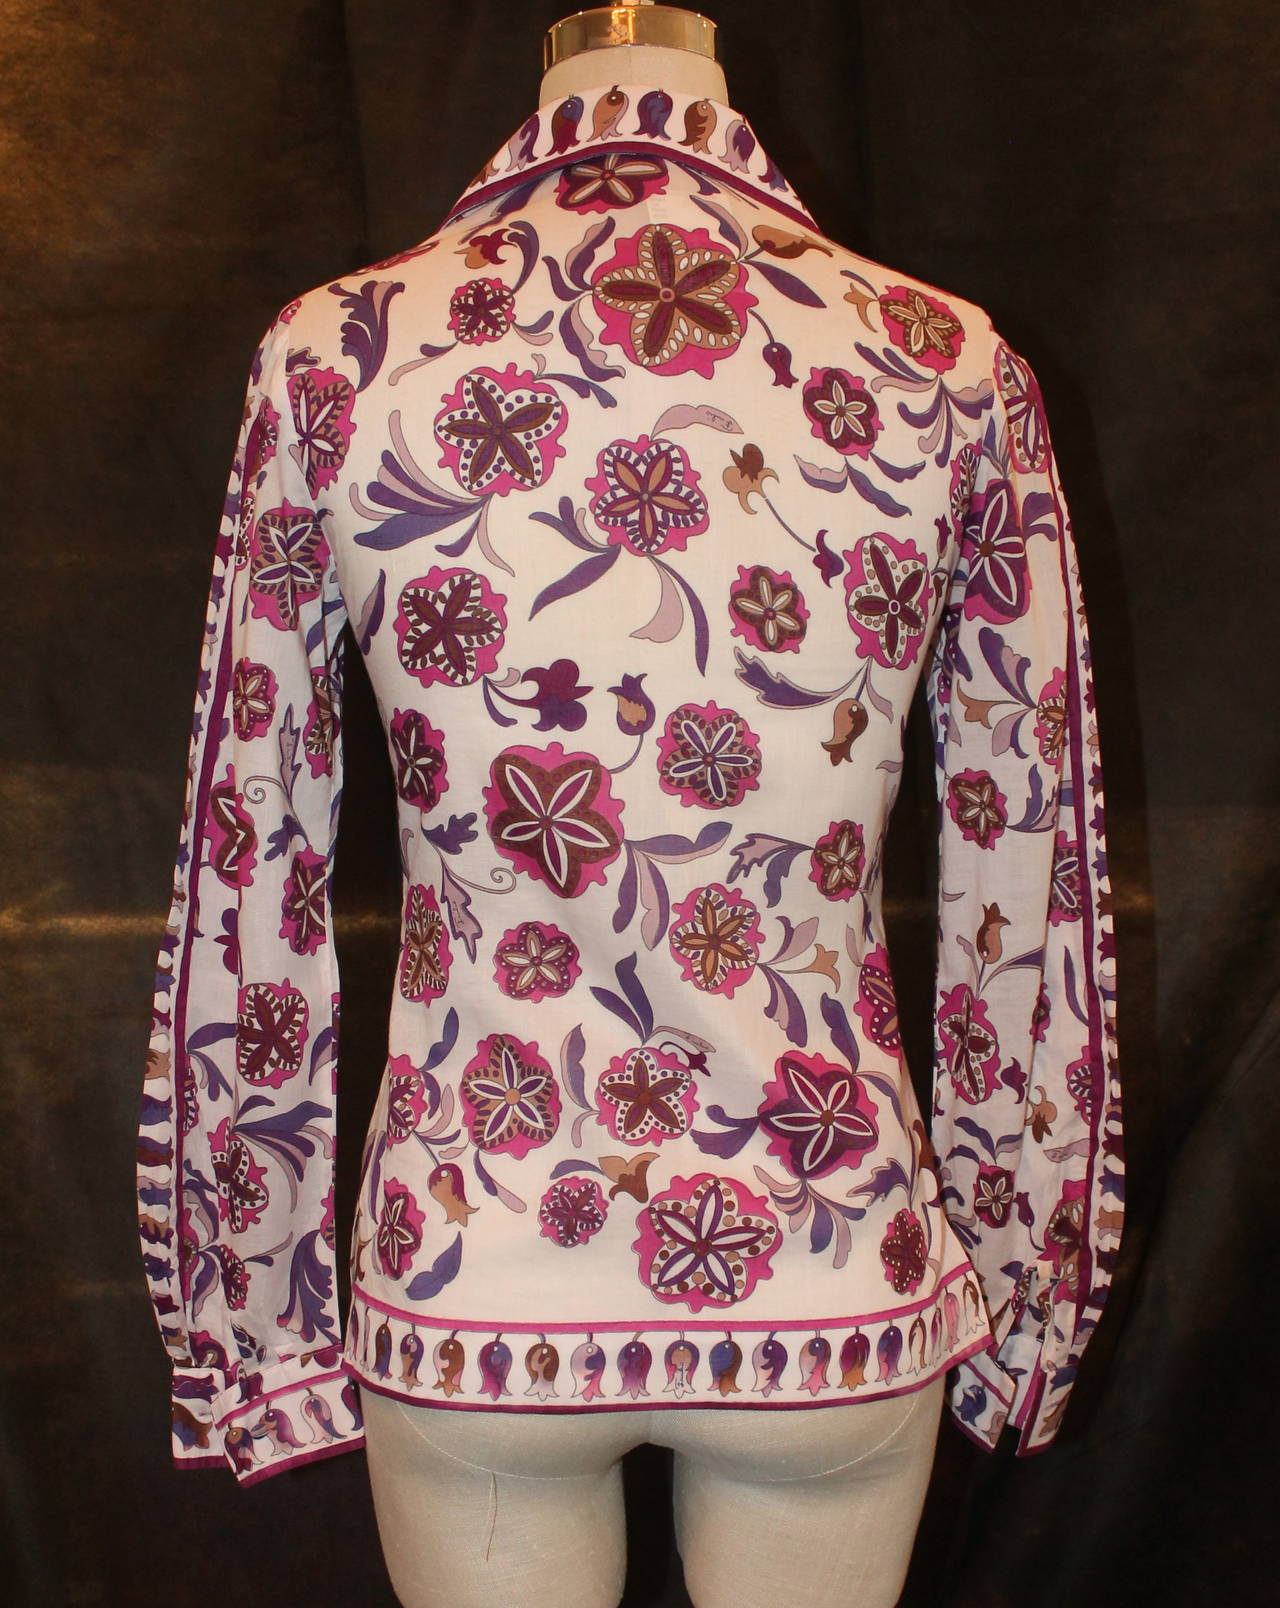 Pucci Vintage White, Purple, Pink Floral Print Jacket/Shirt - circa 1960s - S In Good Condition For Sale In Palm Beach, FL